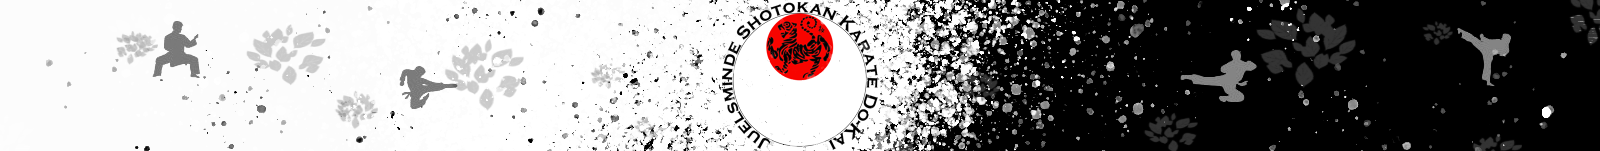 Juelsminde Shotokan Karate Do-Kai